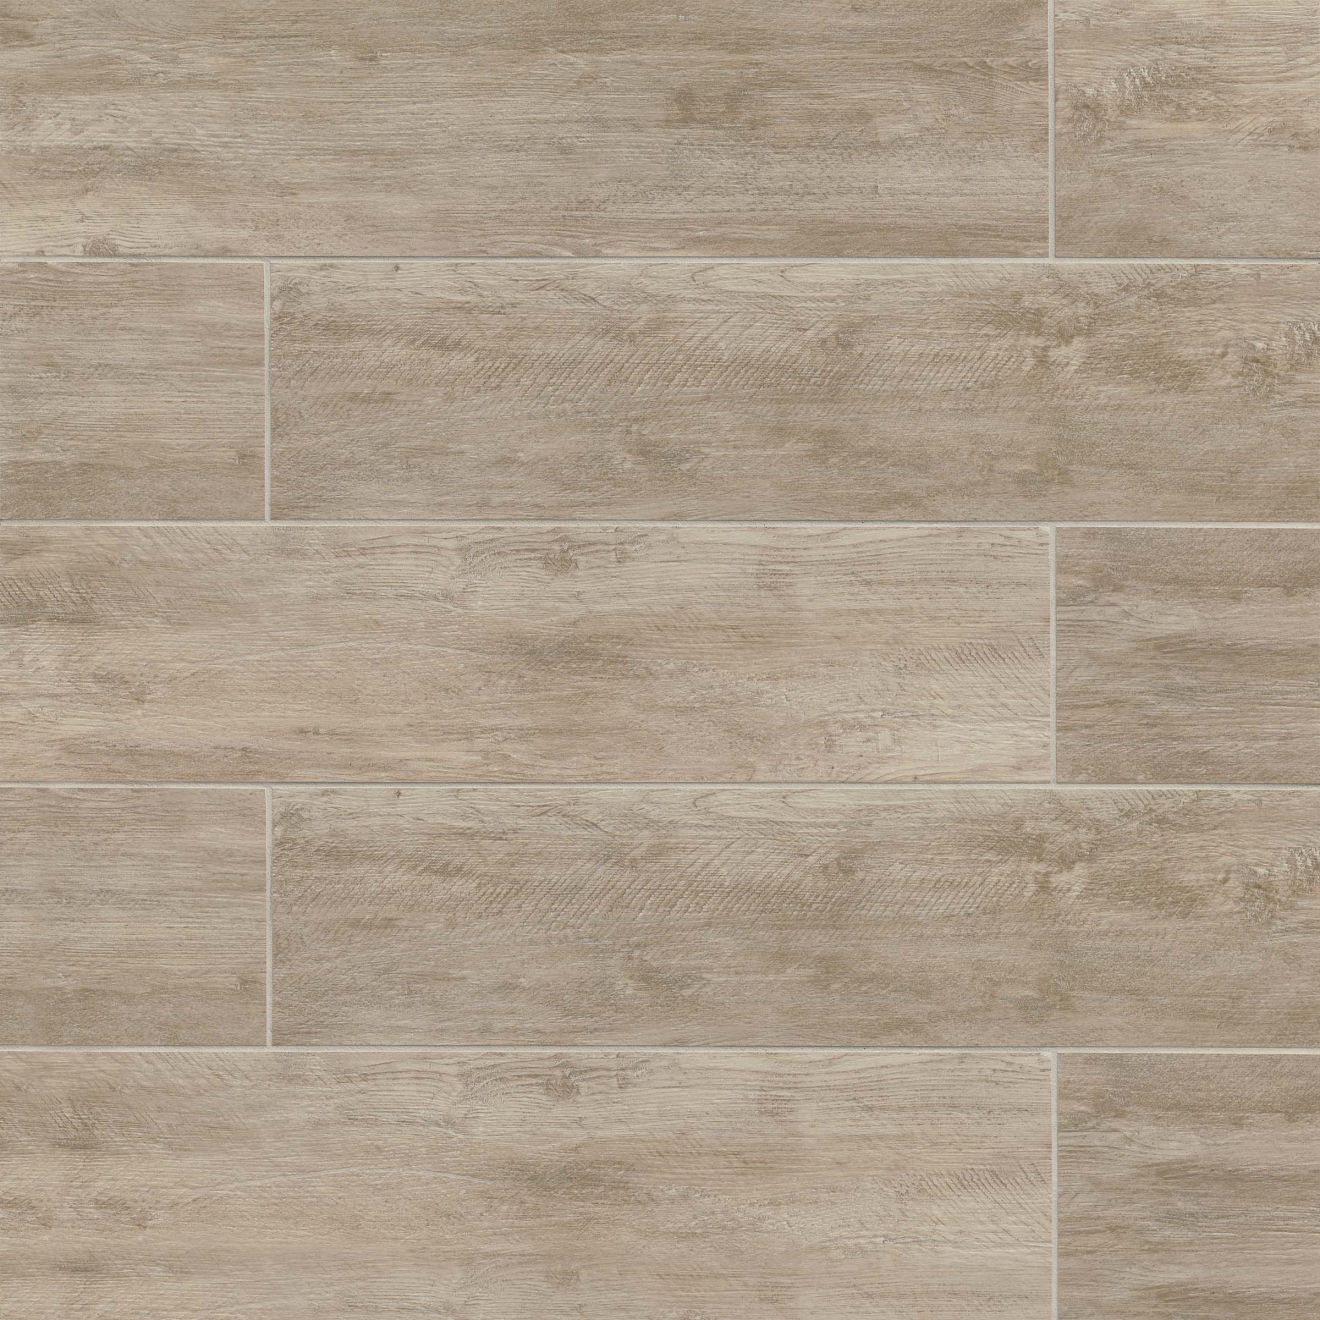 River Wood 8 Quot X 36 Quot Floor Amp Wall Tile In Oak Bedrosians